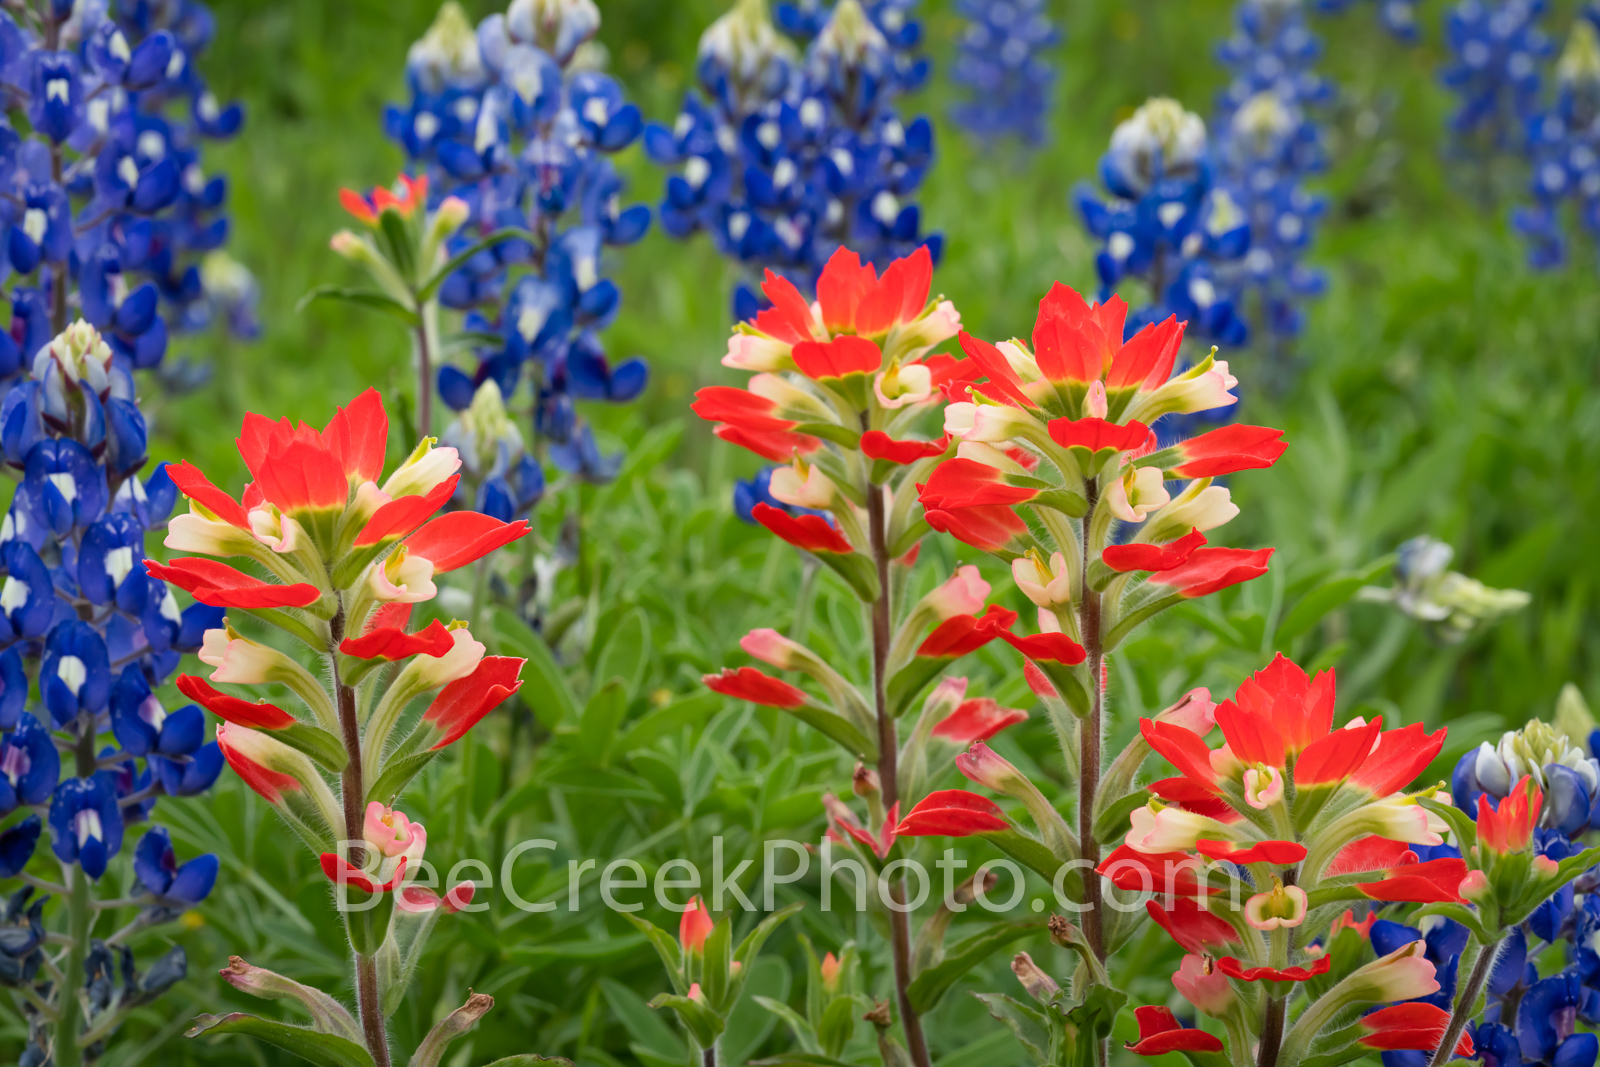 Hill Country Indian Paintbrush and Bluebonnets - Texas hill country bluebonnet and Indian Paintbrush growing wild. We capture...